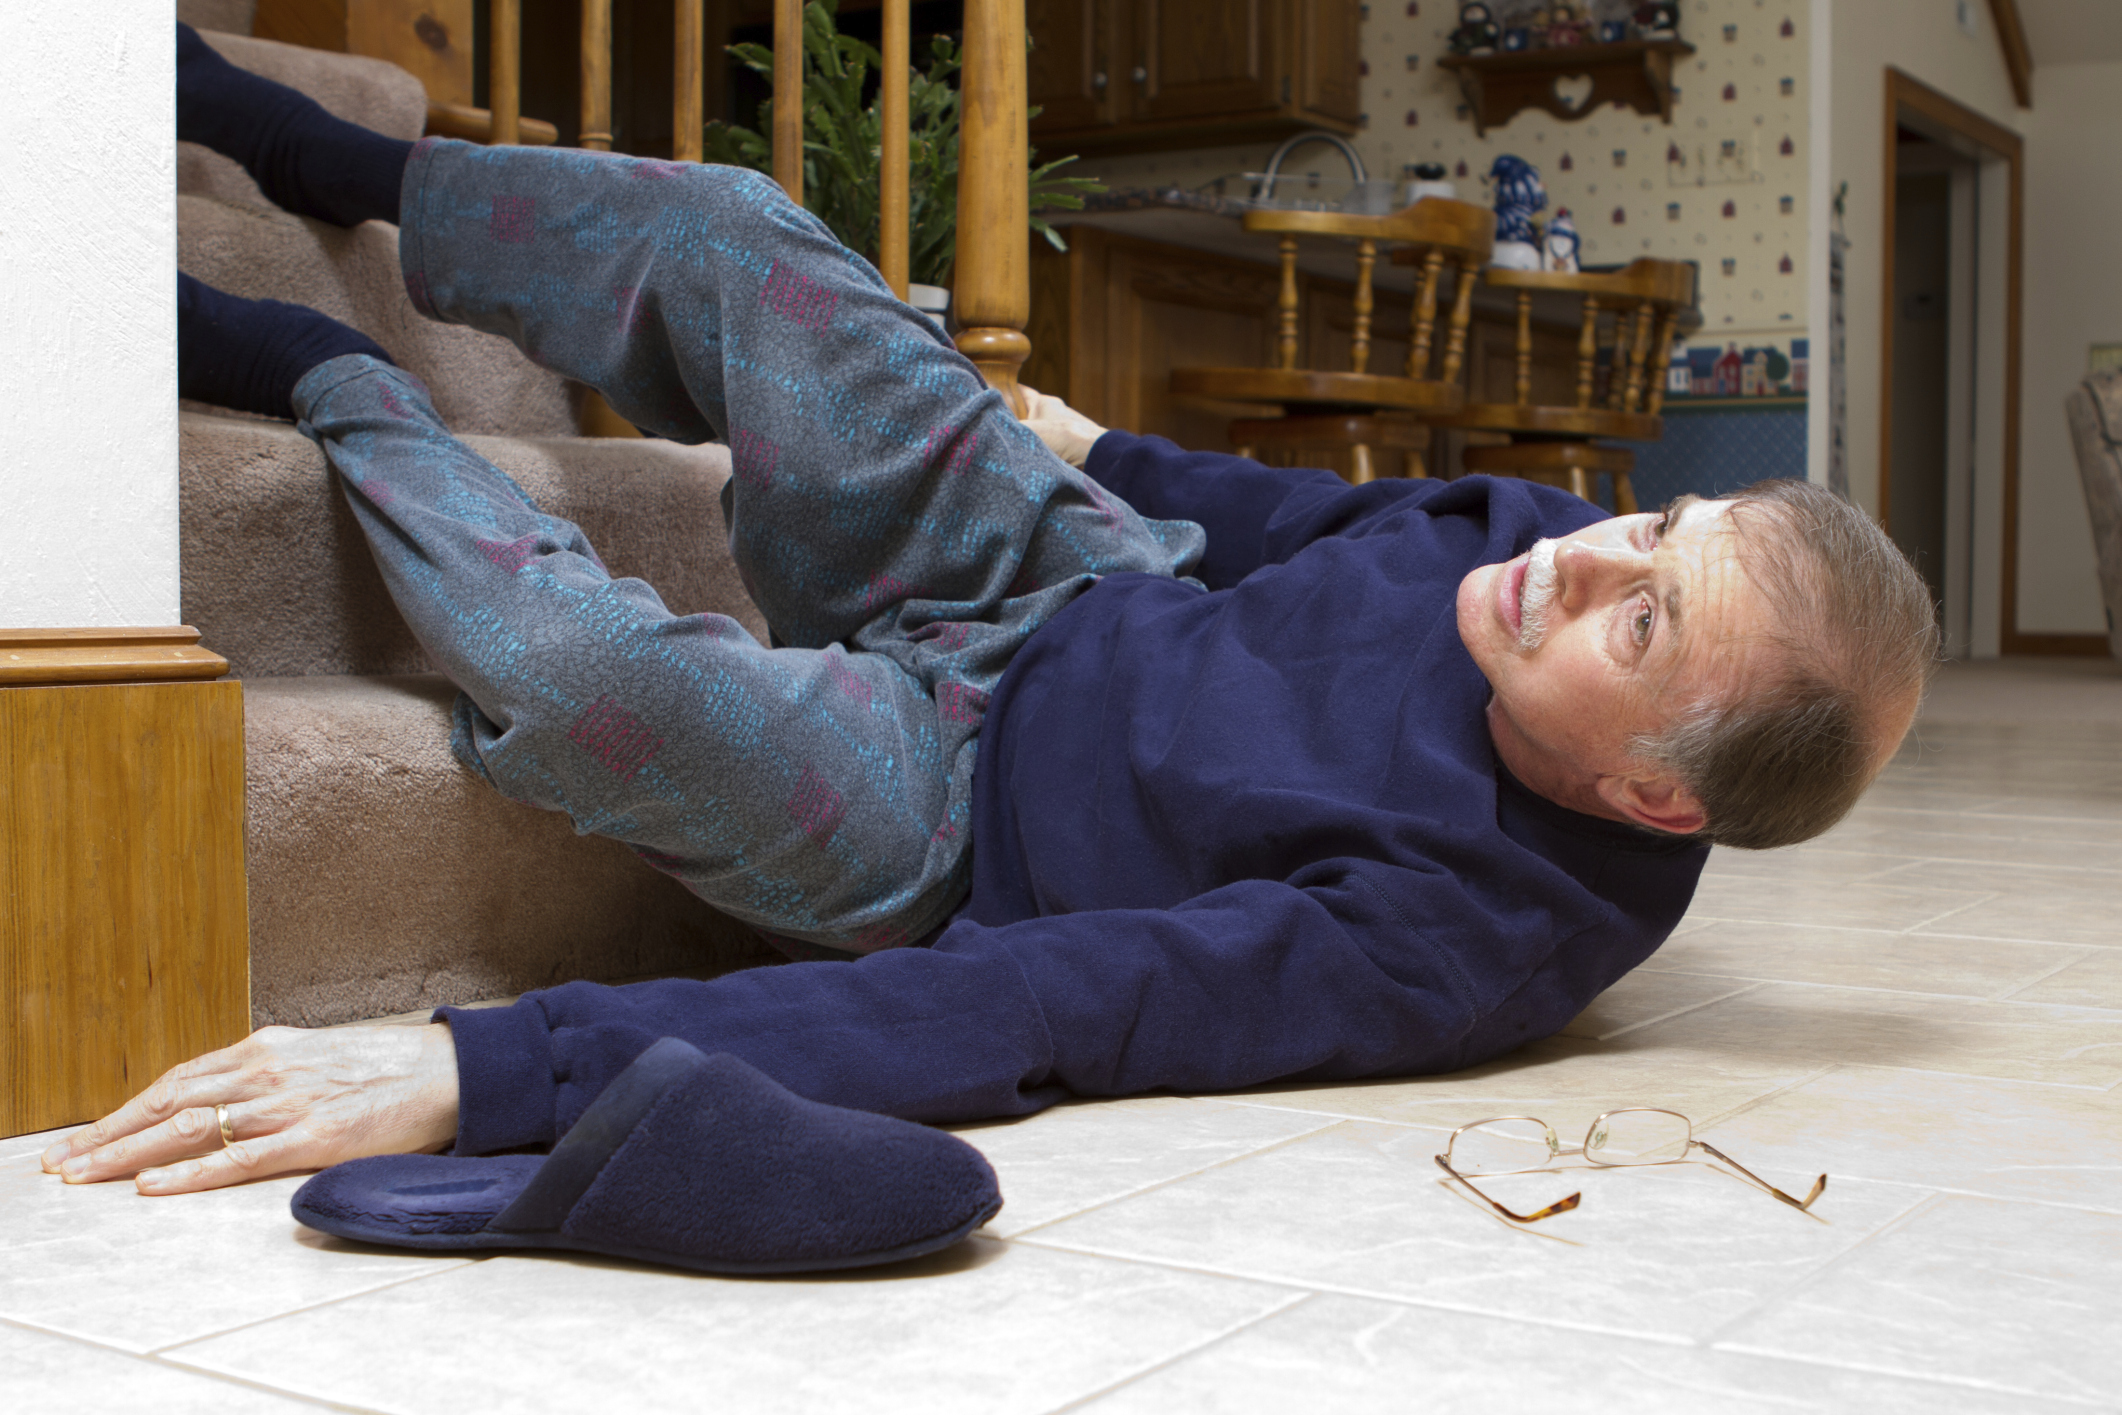 Falls and injuries can be prevented with careful planning.